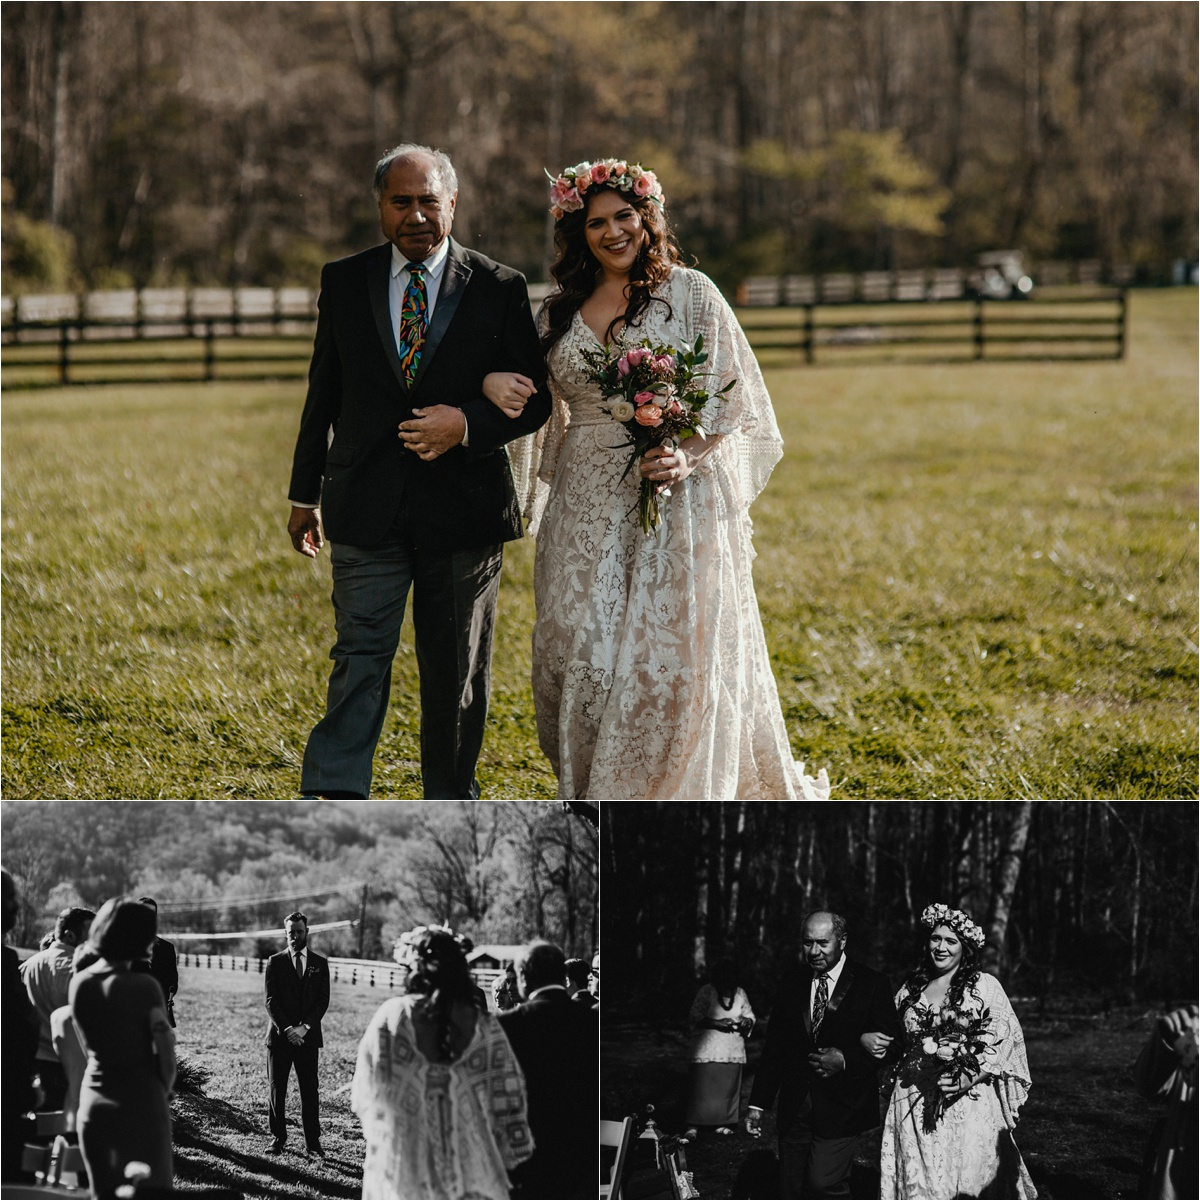 fields-blackberry-cove-spring-wnc-asheville-wedding_0032.jpg